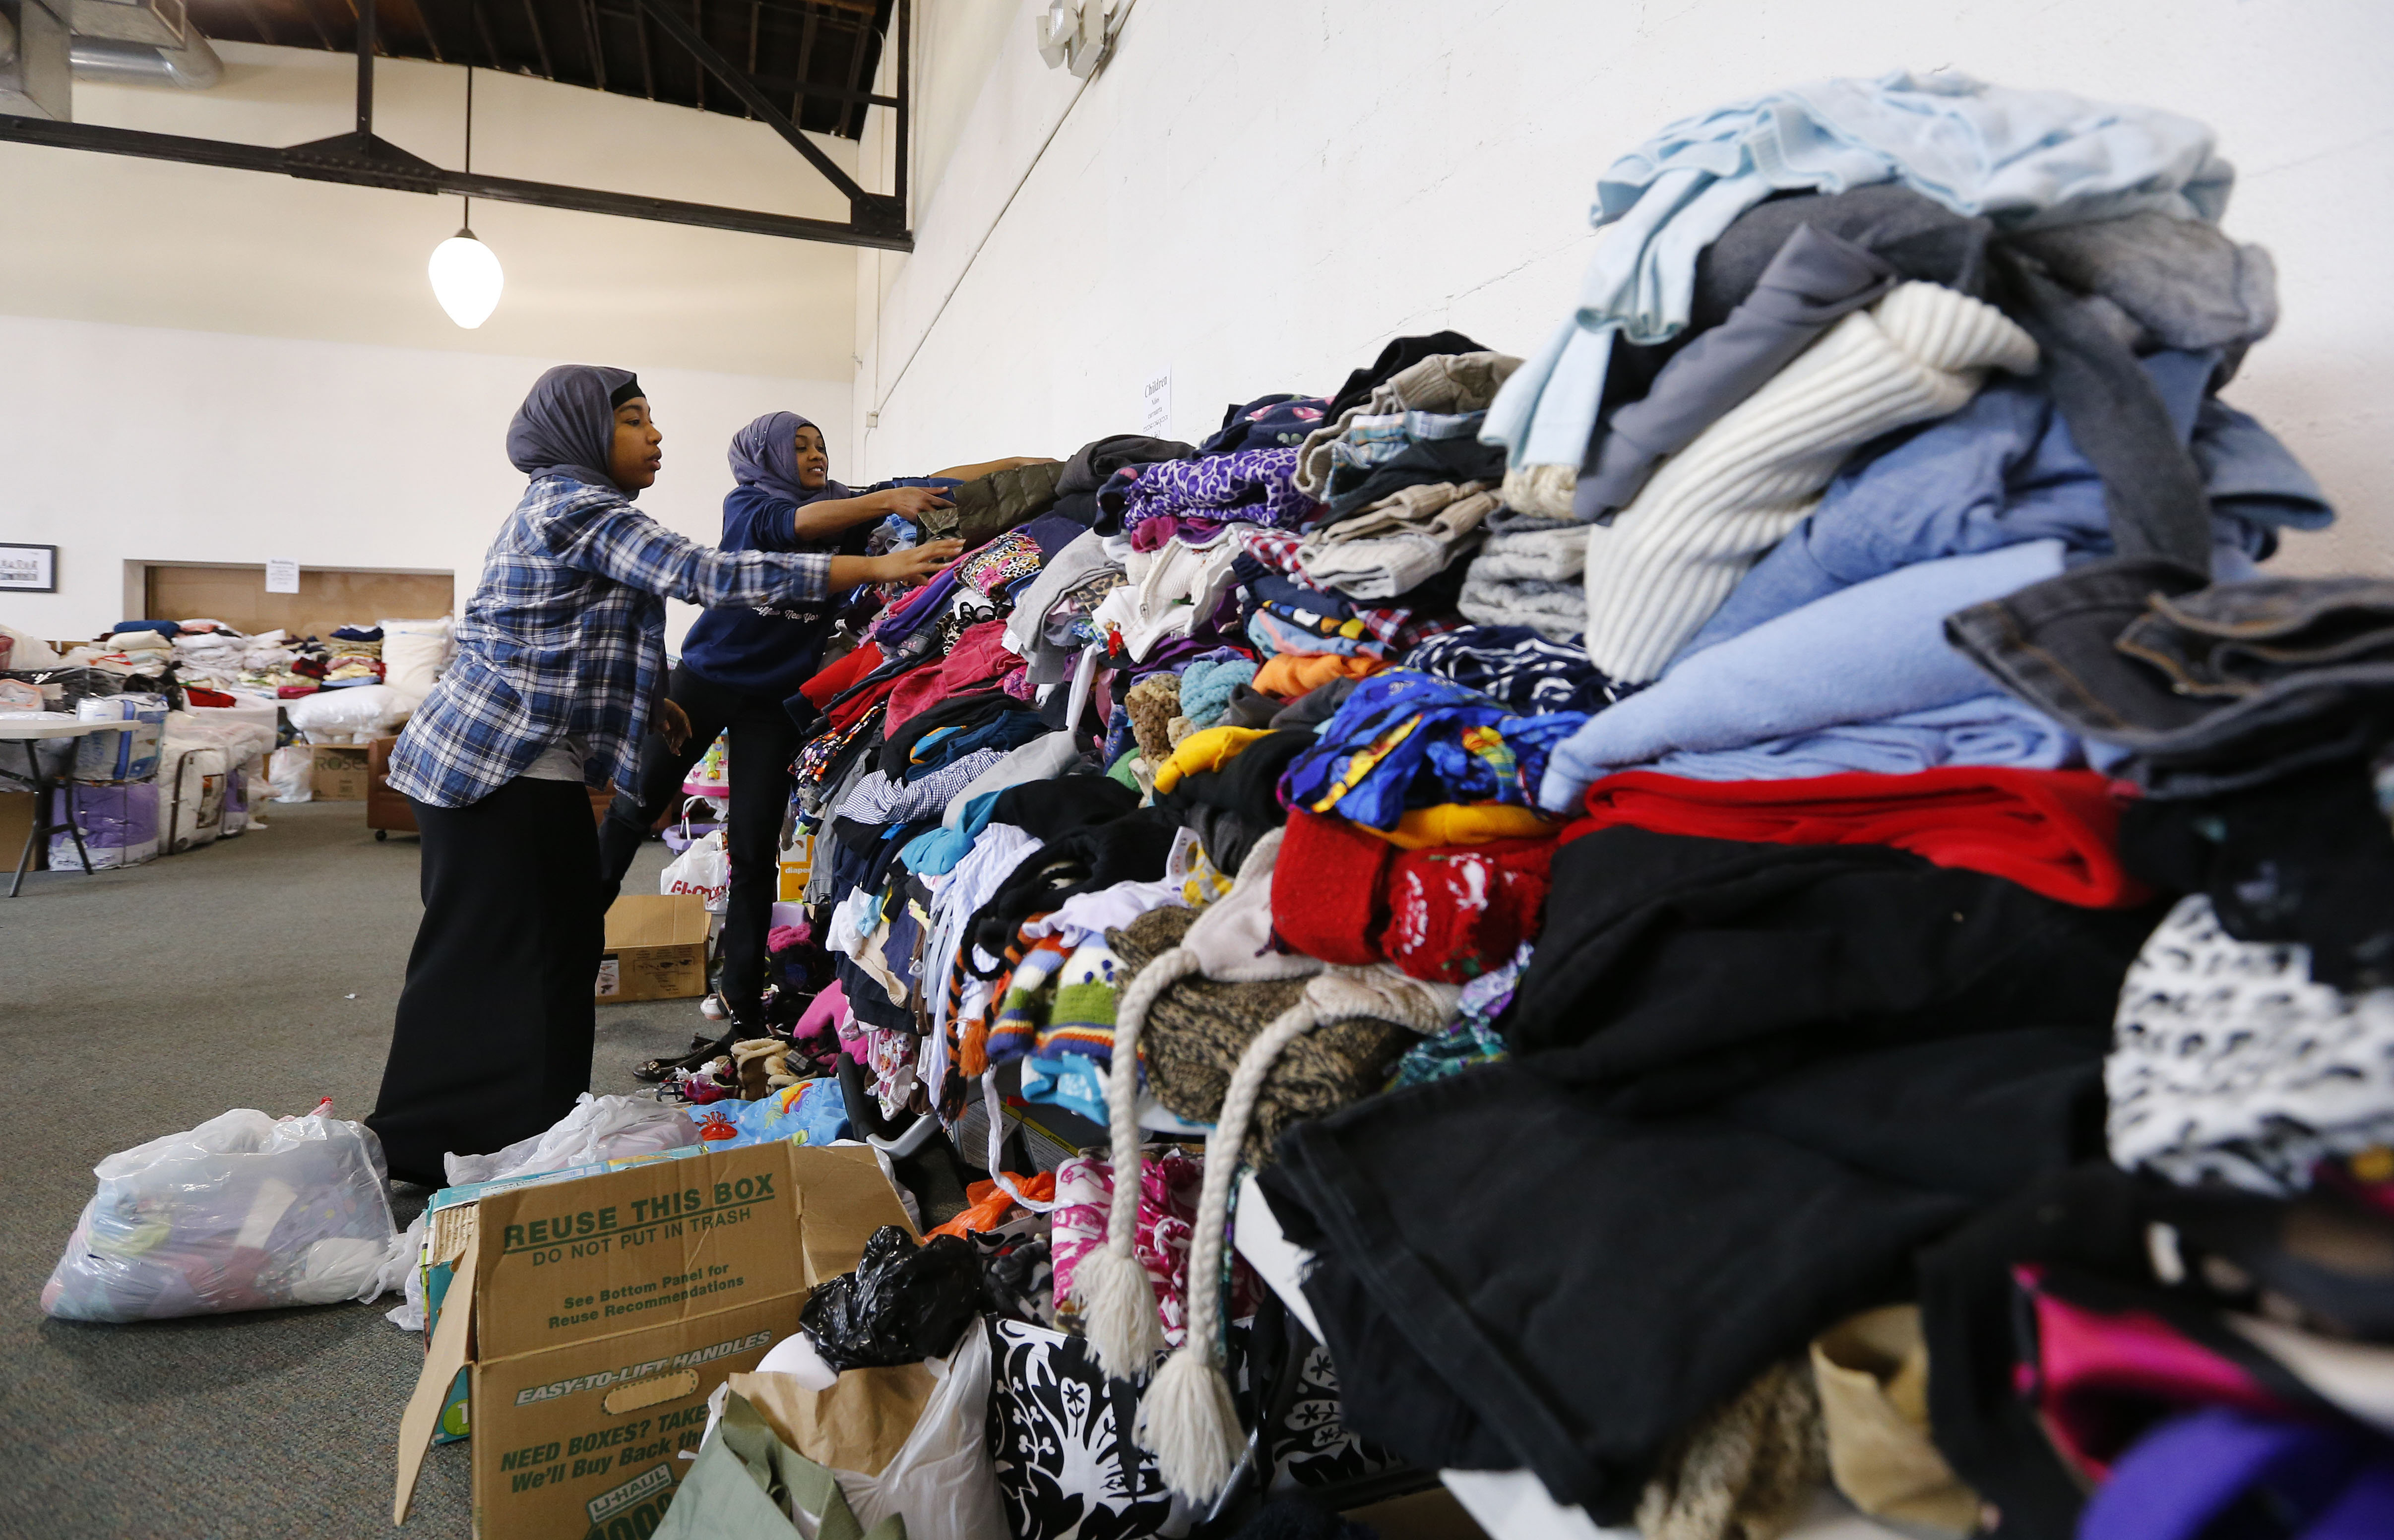 Event organizers Laila Ismail, left, and Juweria Dahir, right, sort through some of the donated clothes for the roughly 90 victims of last weekend's Lafayette Apartment fire at the Jericho Road Community Health Center in Buffalo Saturday, March 18, 2017.  (Mark Mulville/Buffalo News)